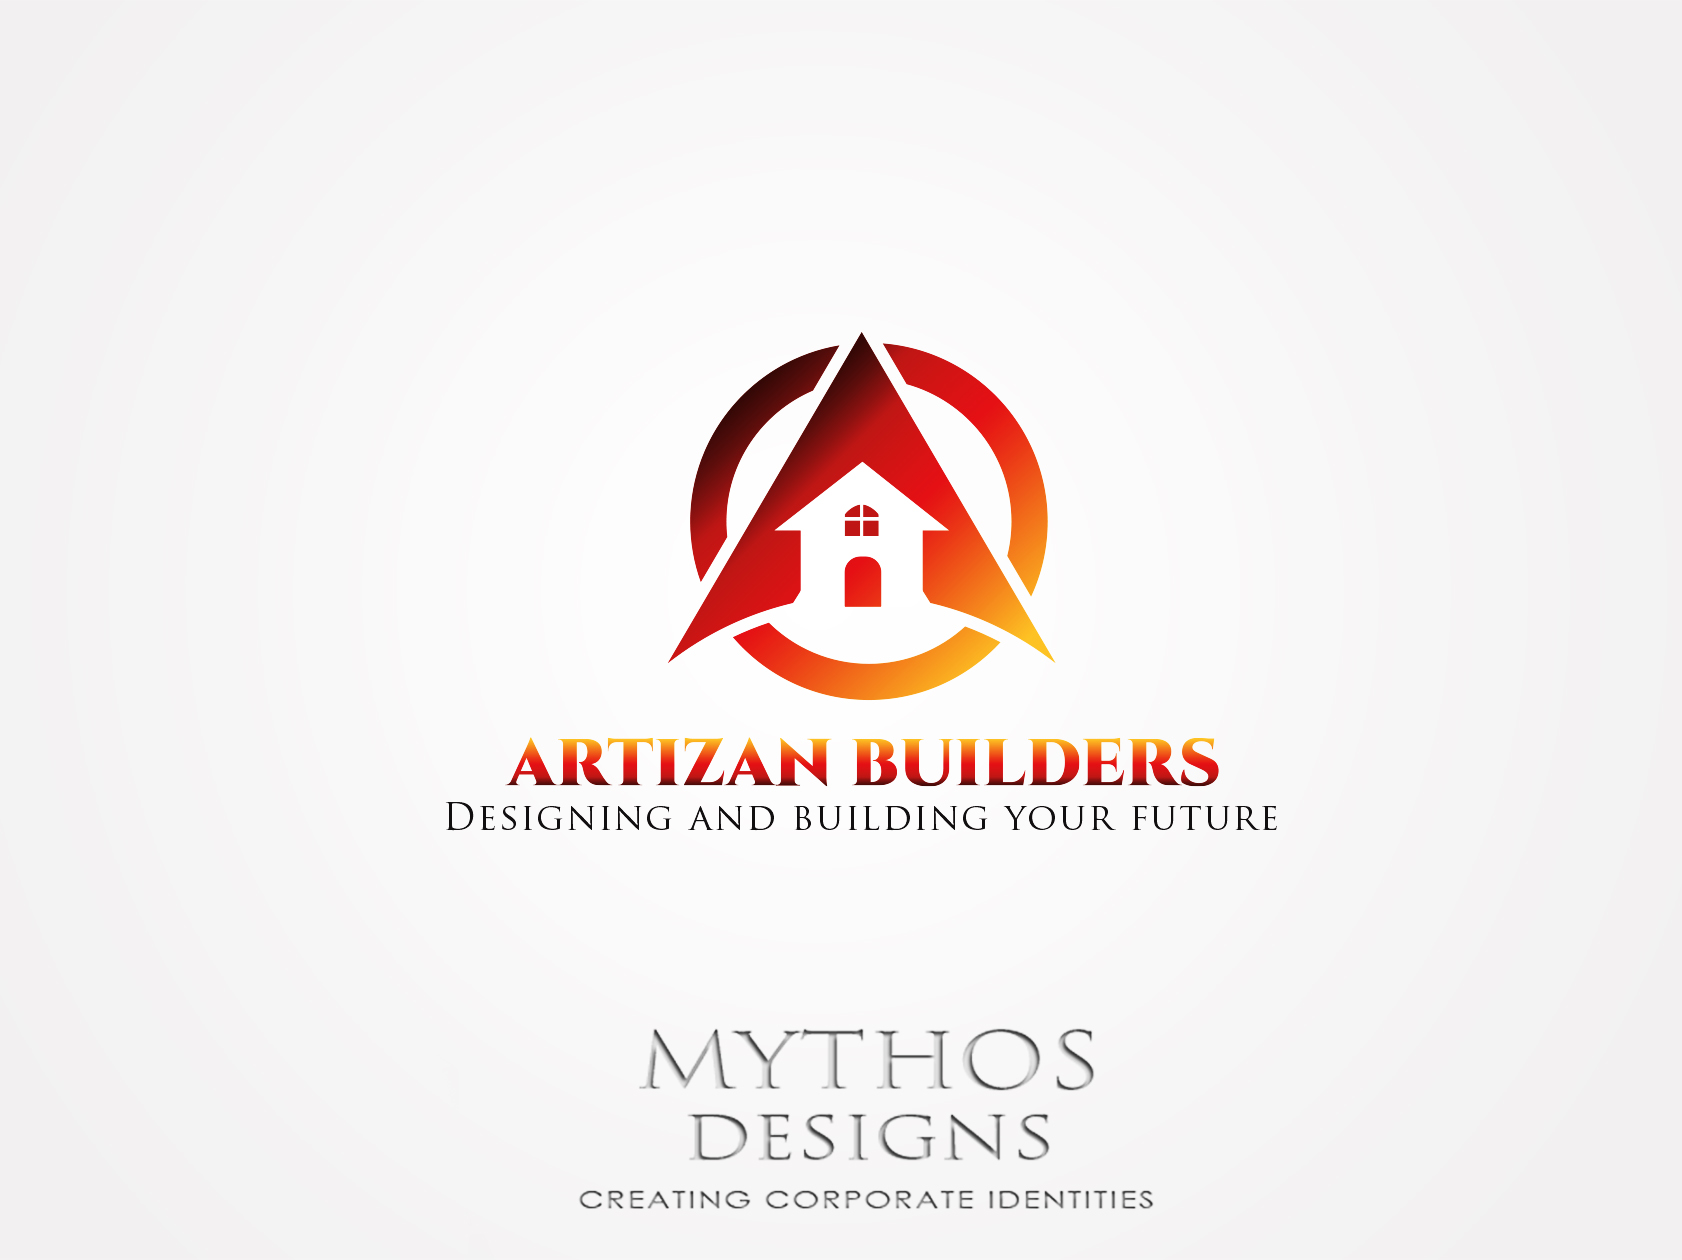 Logo Design by Mythos Designs - Entry No. 206 in the Logo Design Contest Captivating Logo Design for Artisan Builders.